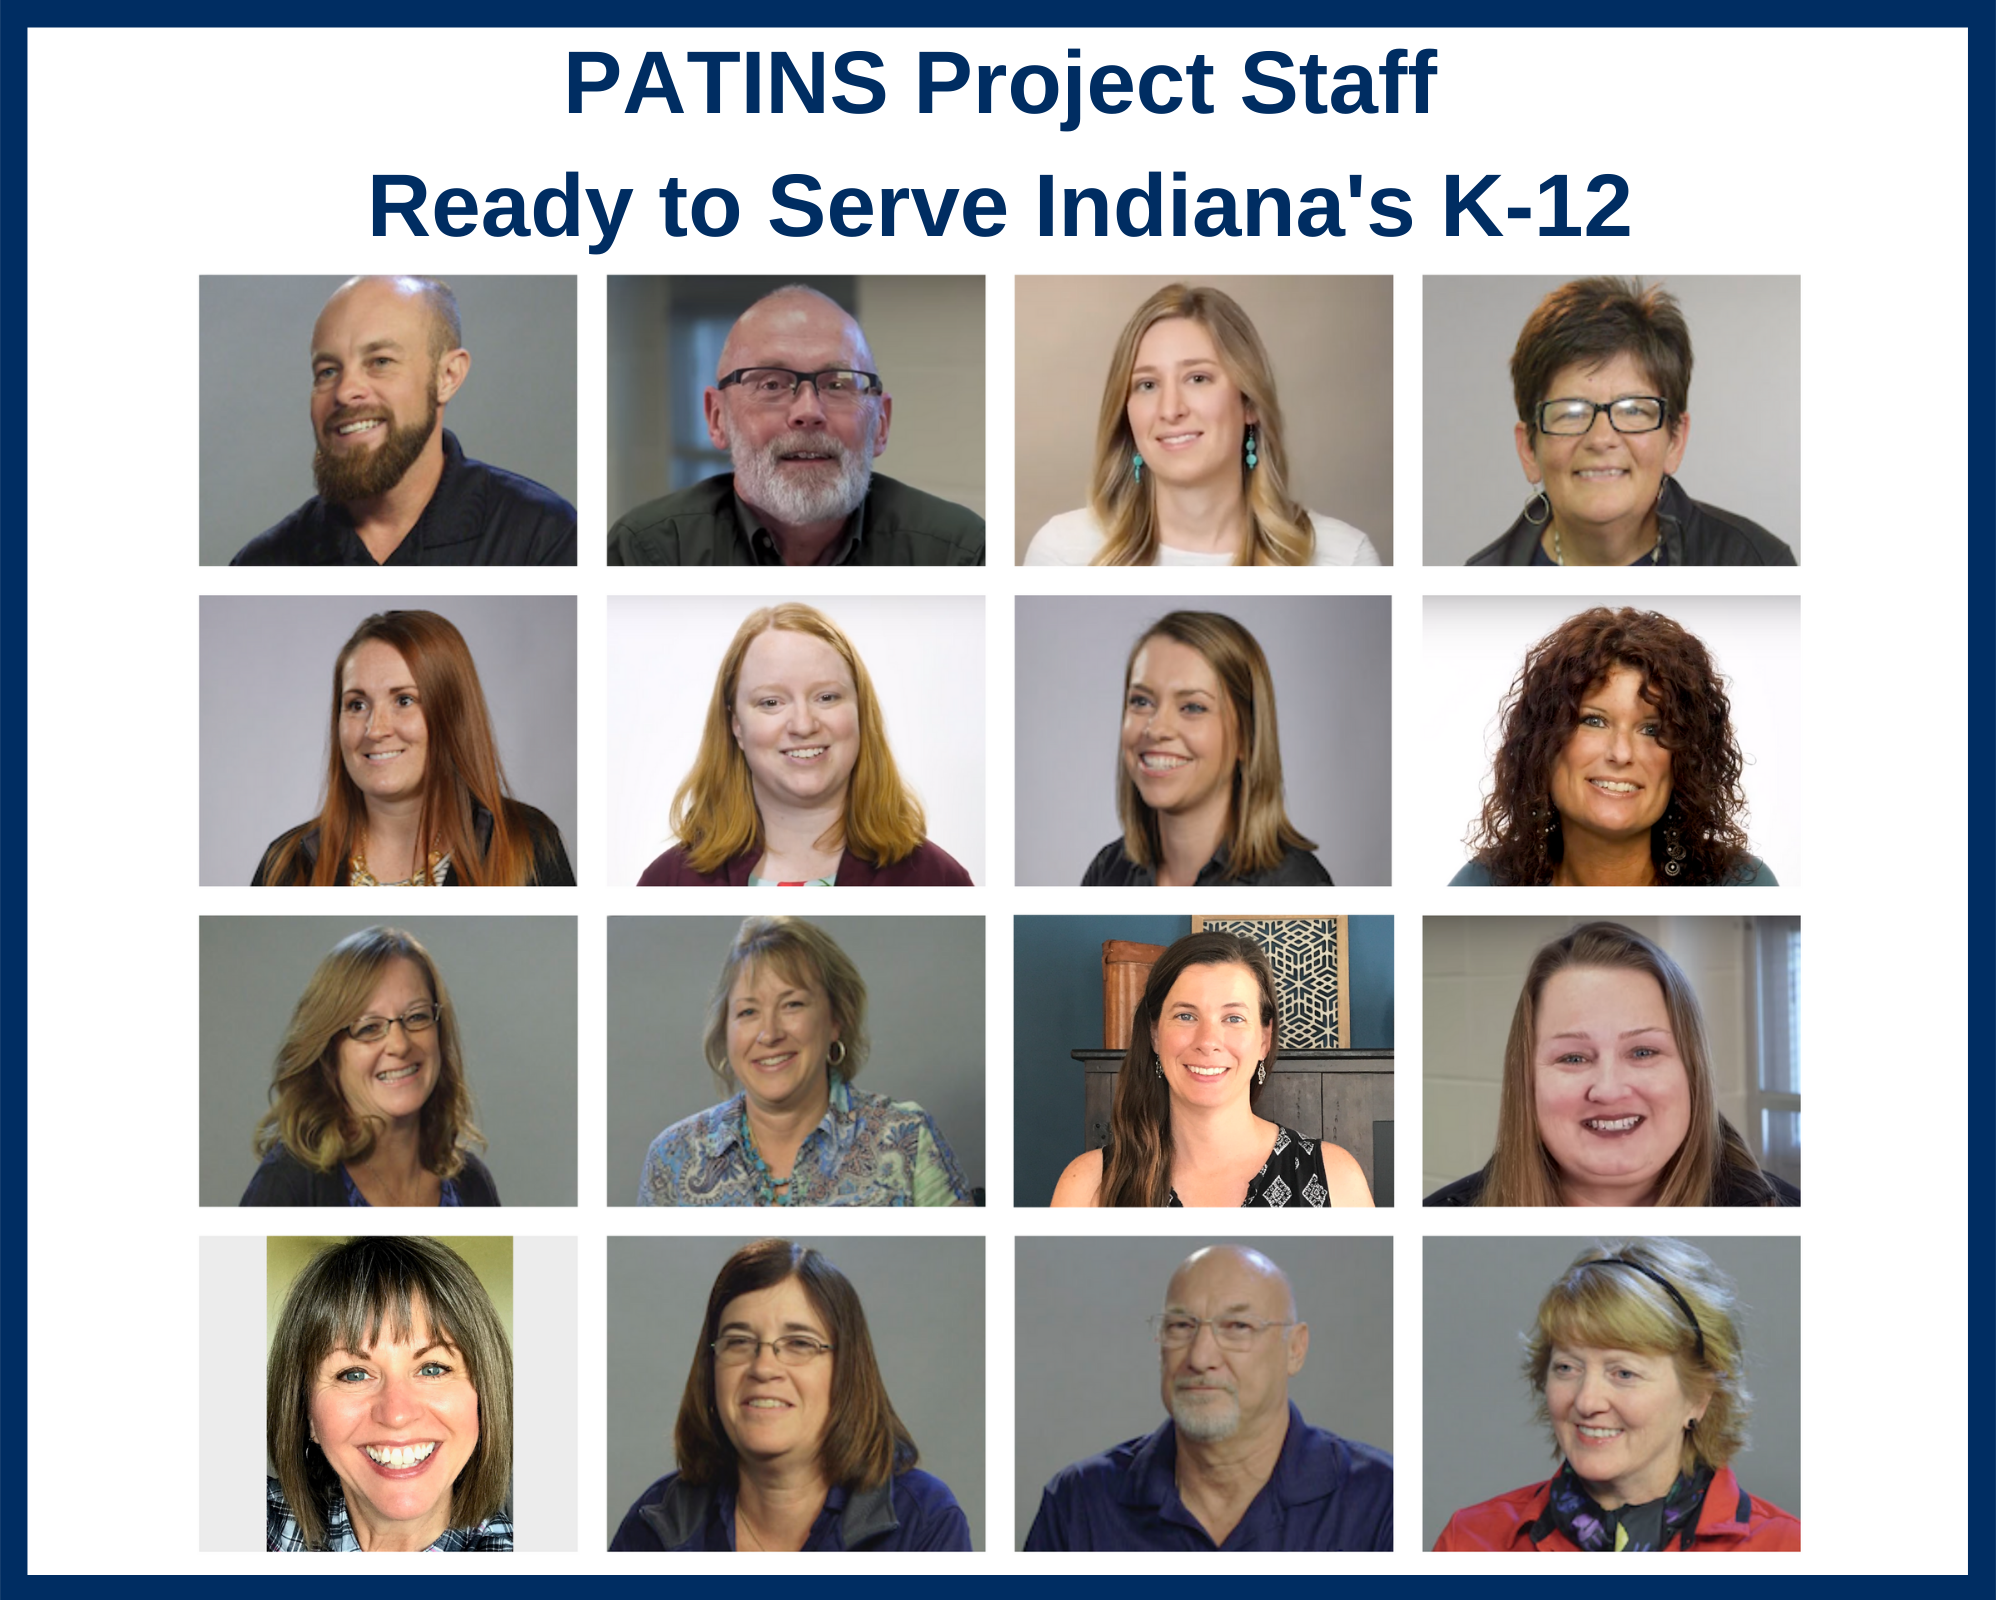 Staff Portrait Collage of the PATINS Project Staff